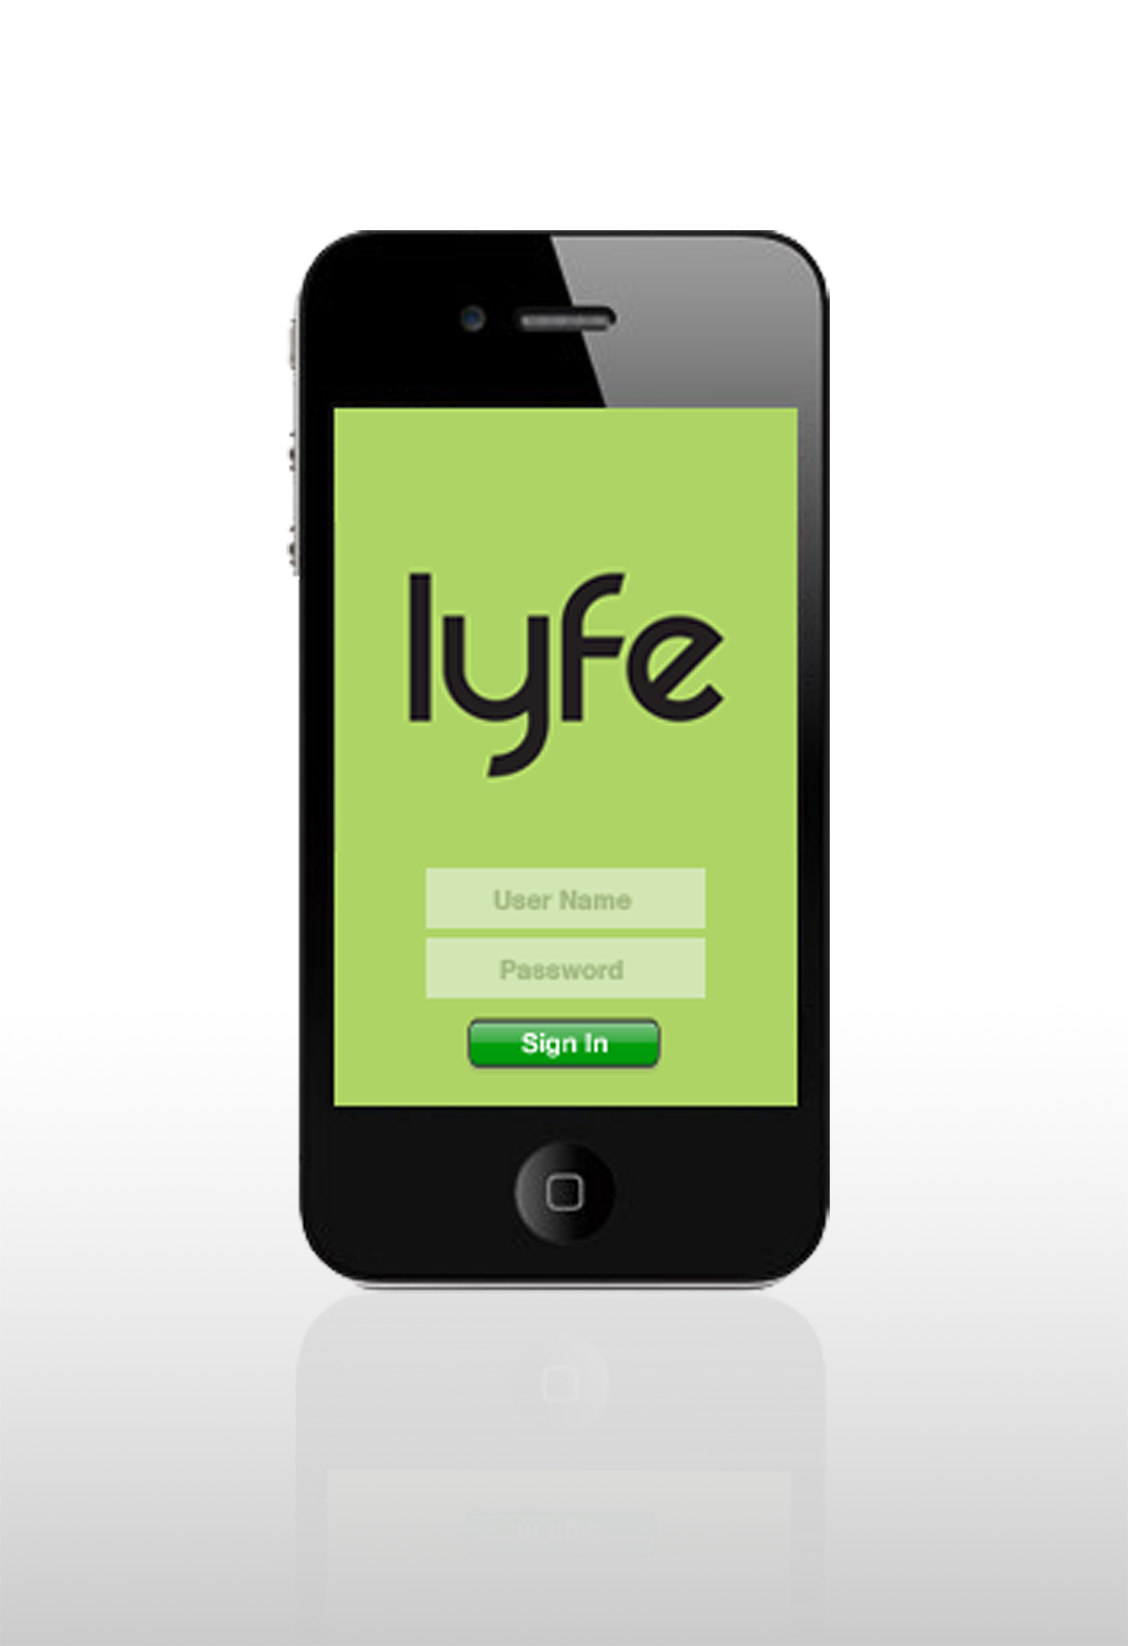 Logo and UI design for Lyfe mobile application. This application helps smartphone users find patterns in their daily life. Knowing such patterns can help individuals choose healthier options.